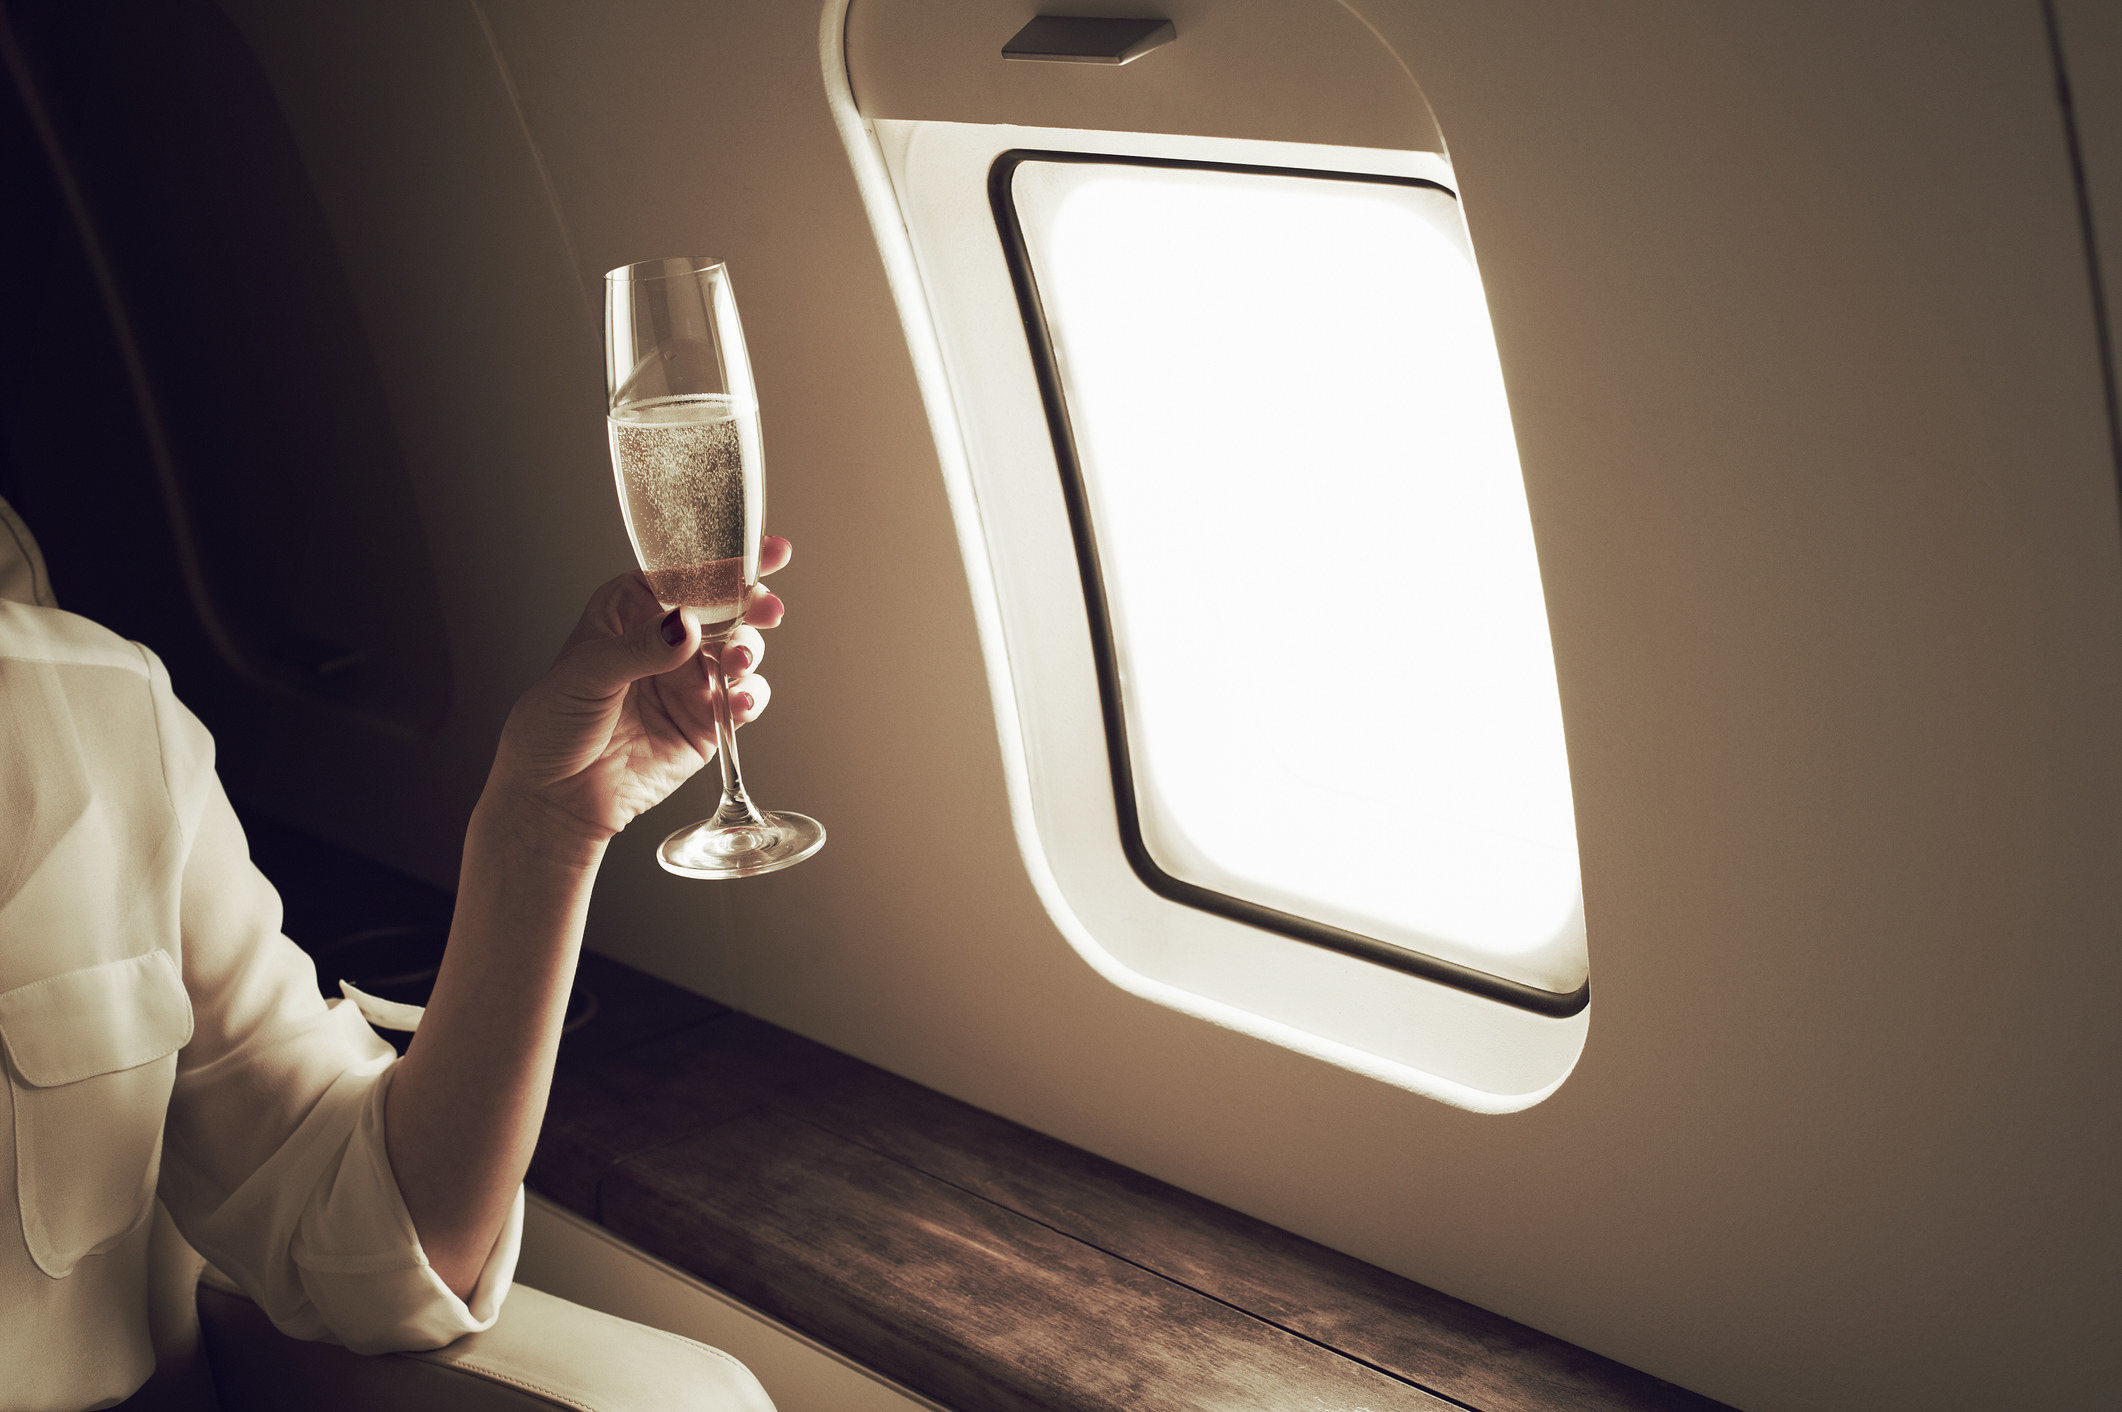 A person holding a glass of champagne while sitting in the window seat of the plane